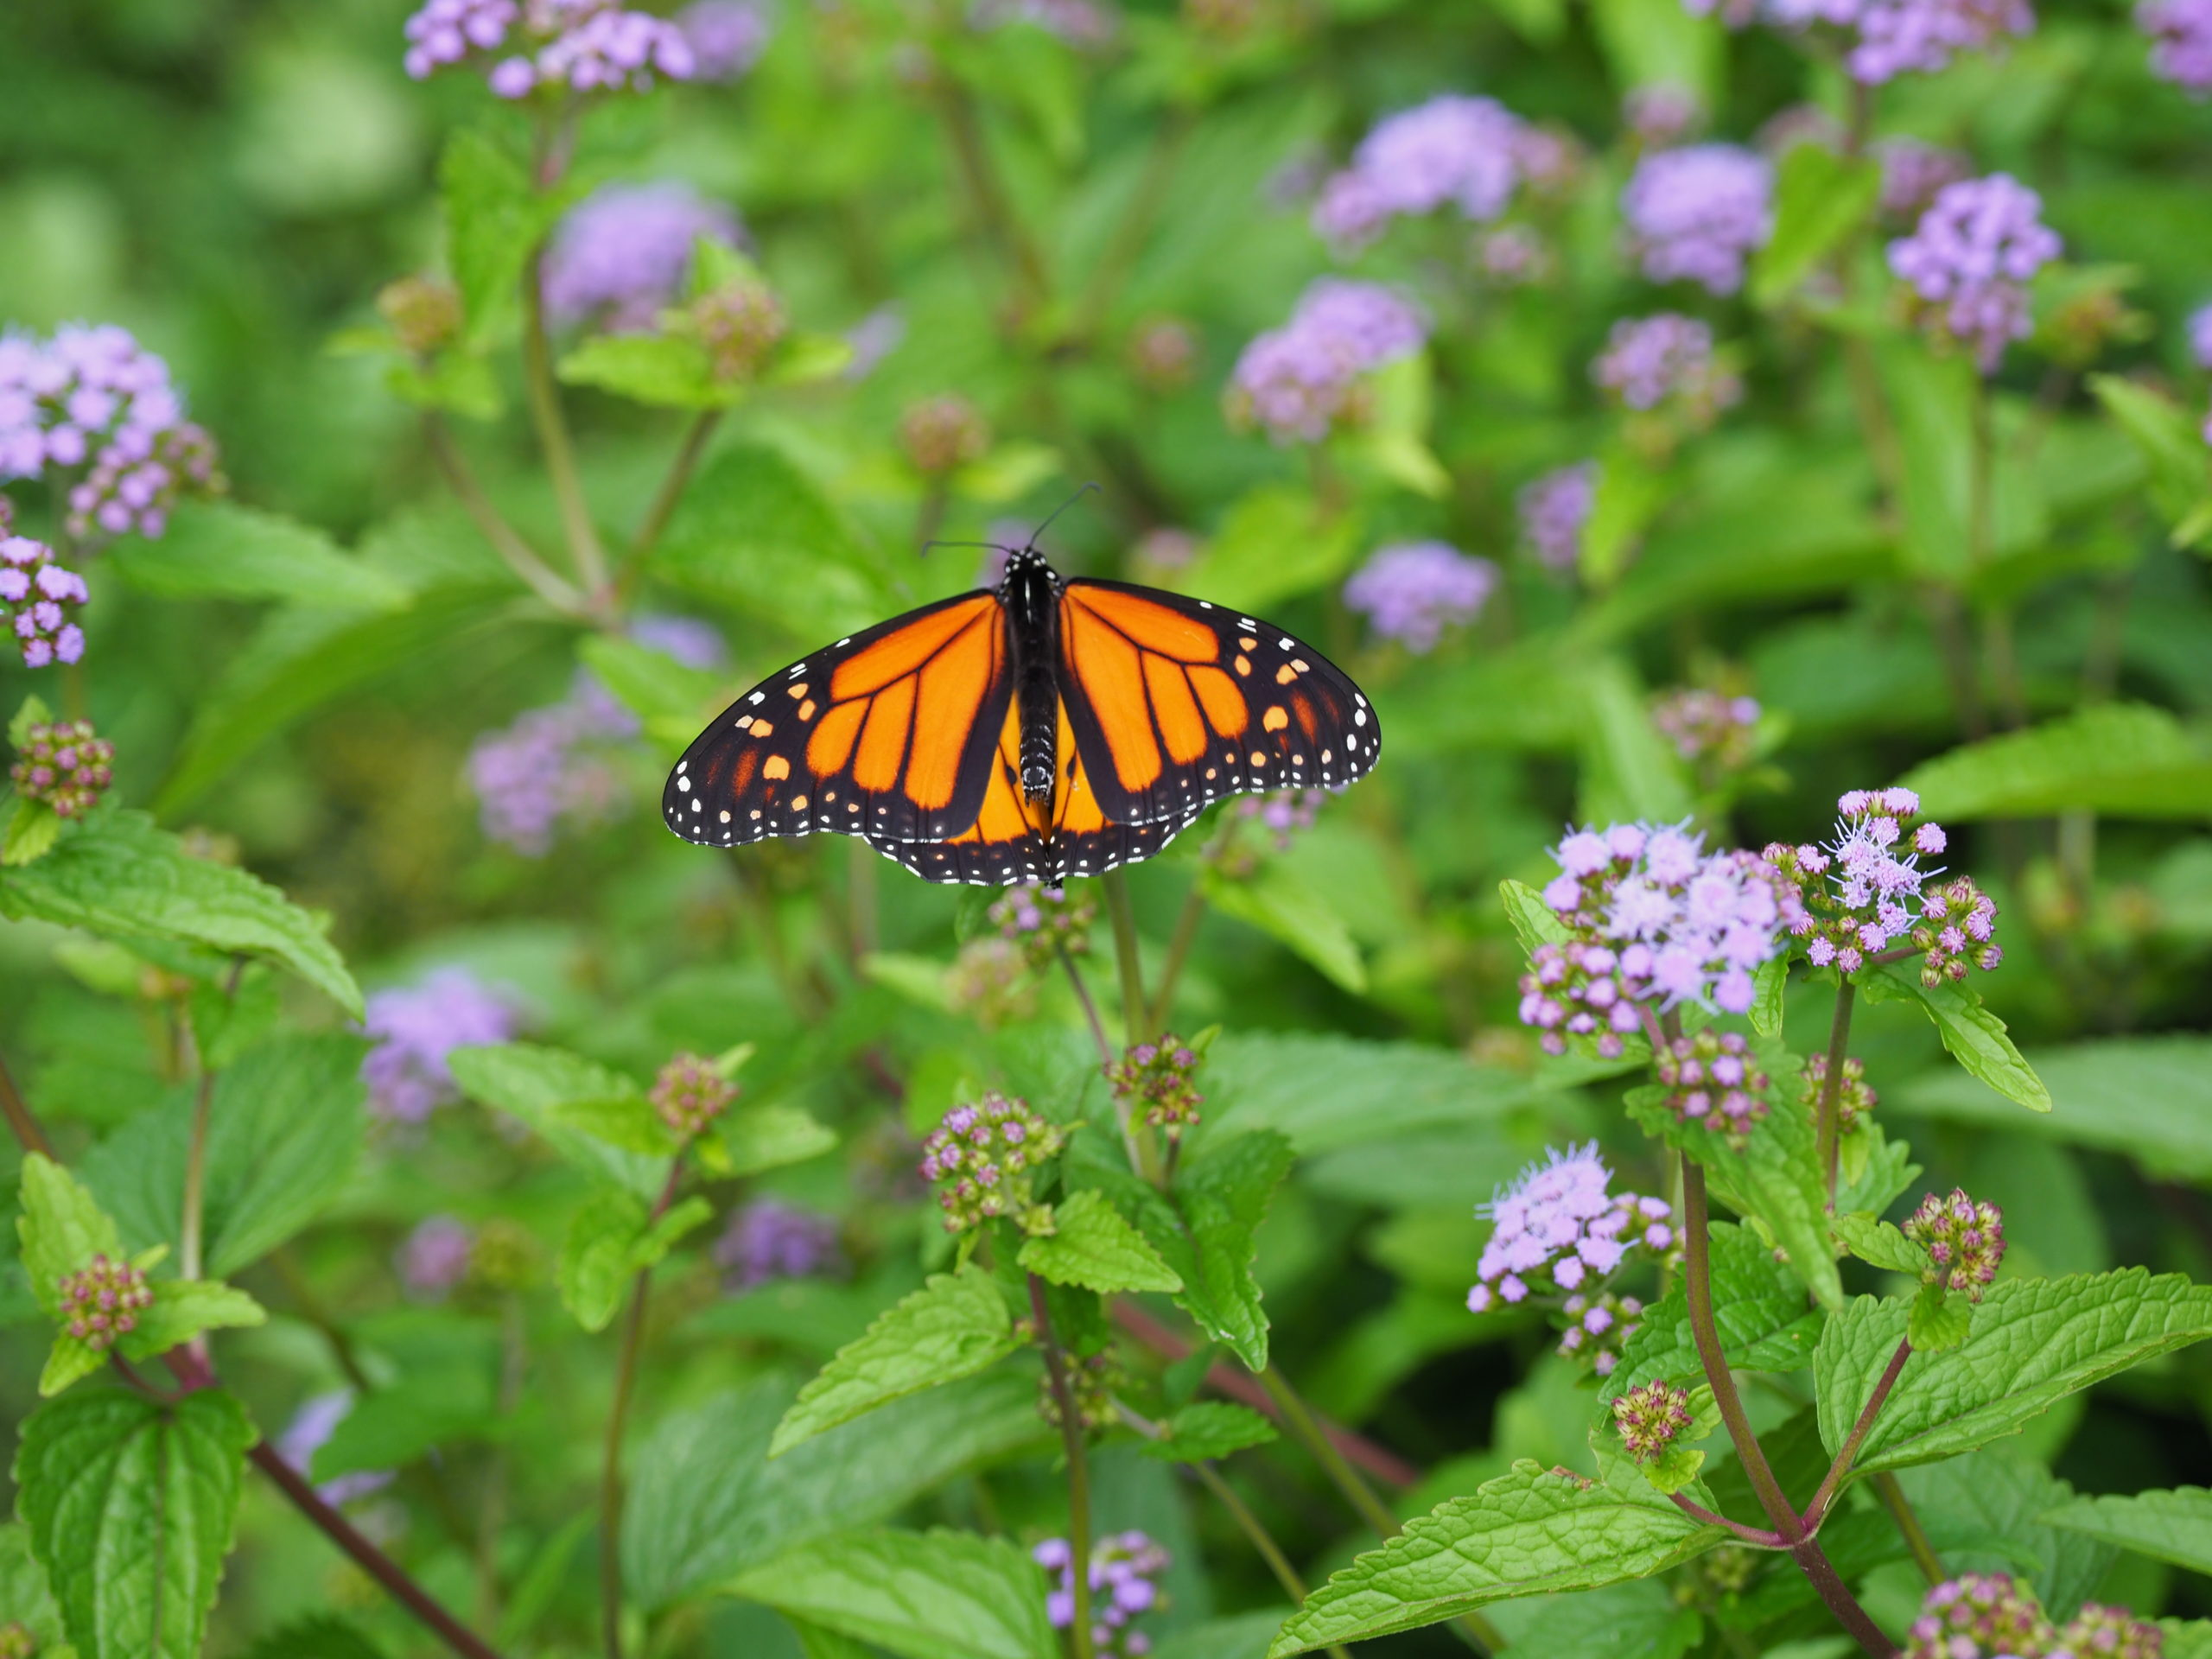 This monarch butterfly spent most of an afternoon in the flowers of the blue mistflower.